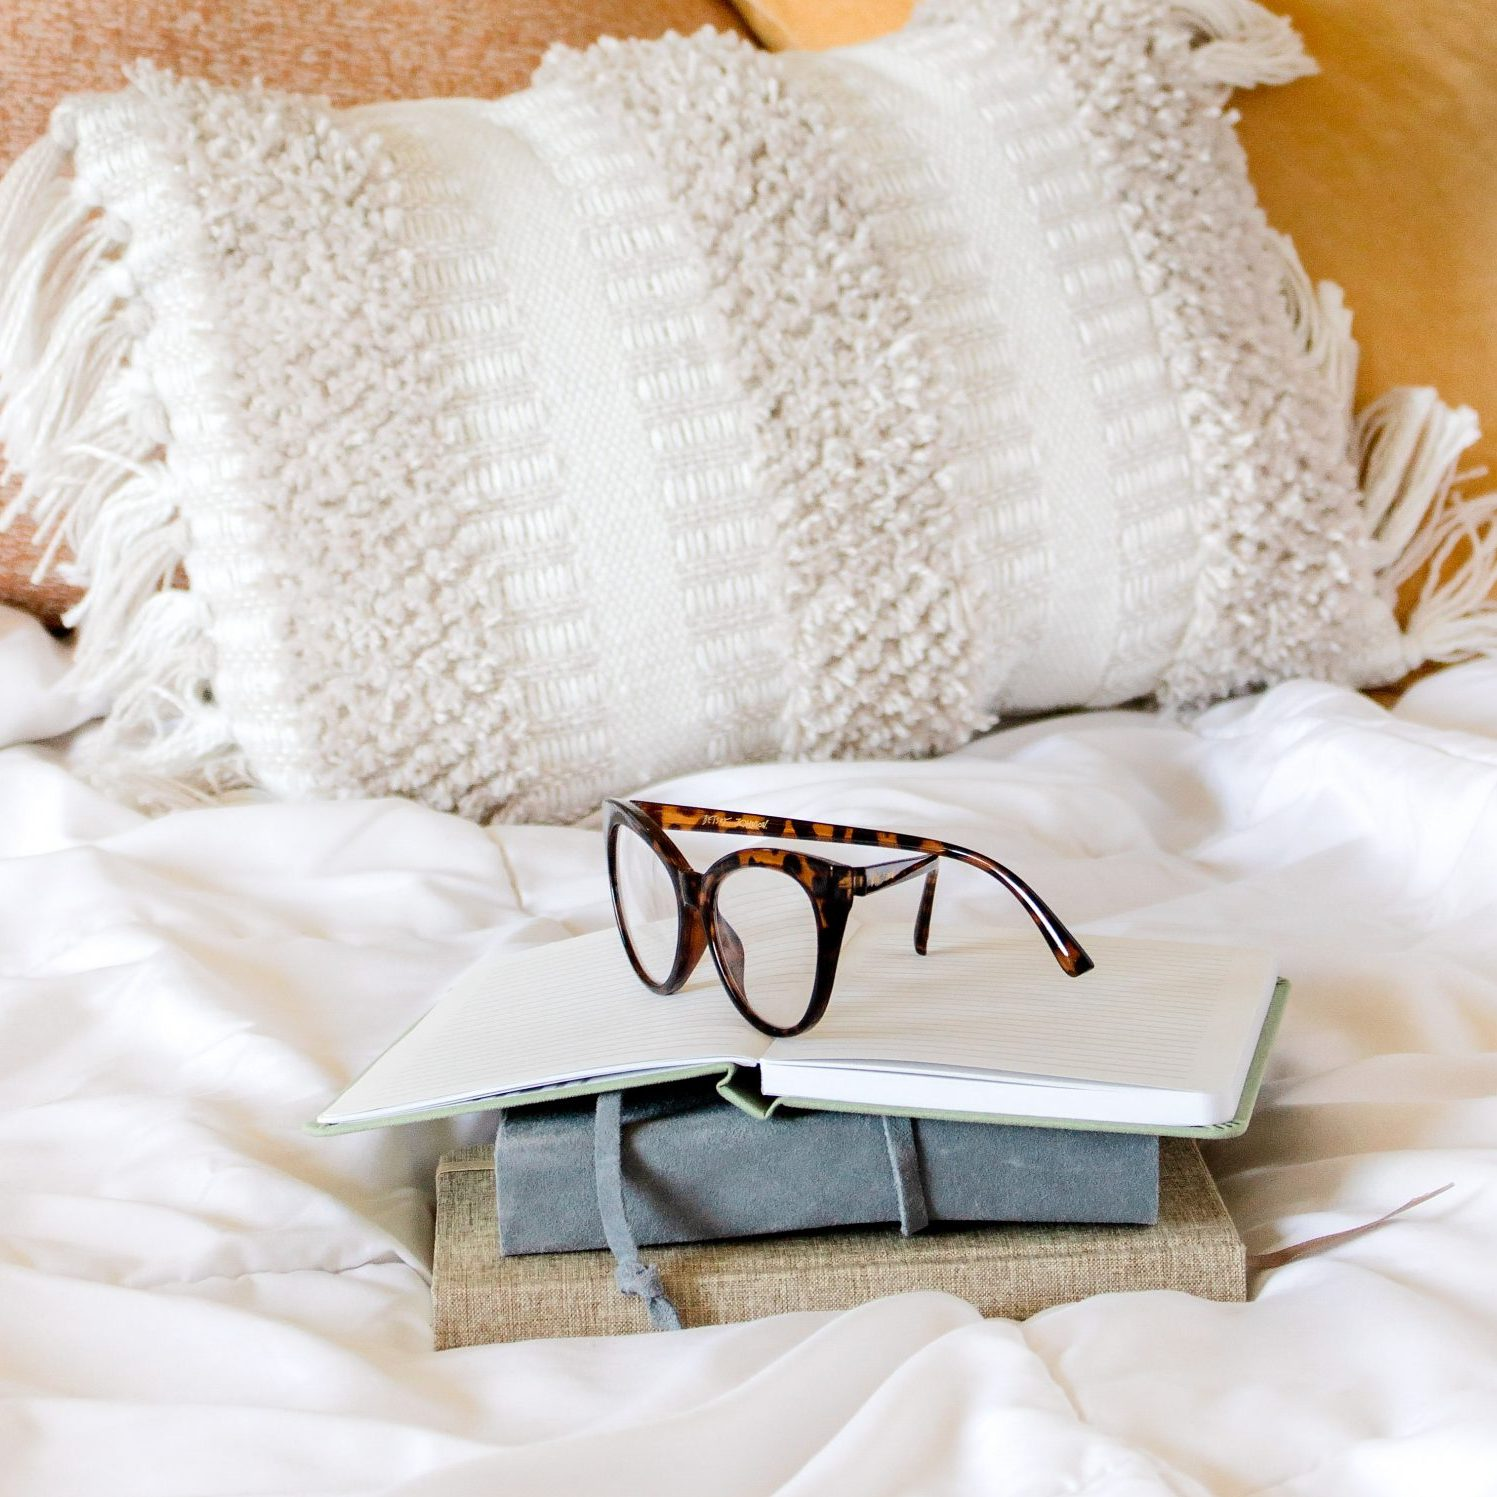 Journaling for wellbeing an relaxation